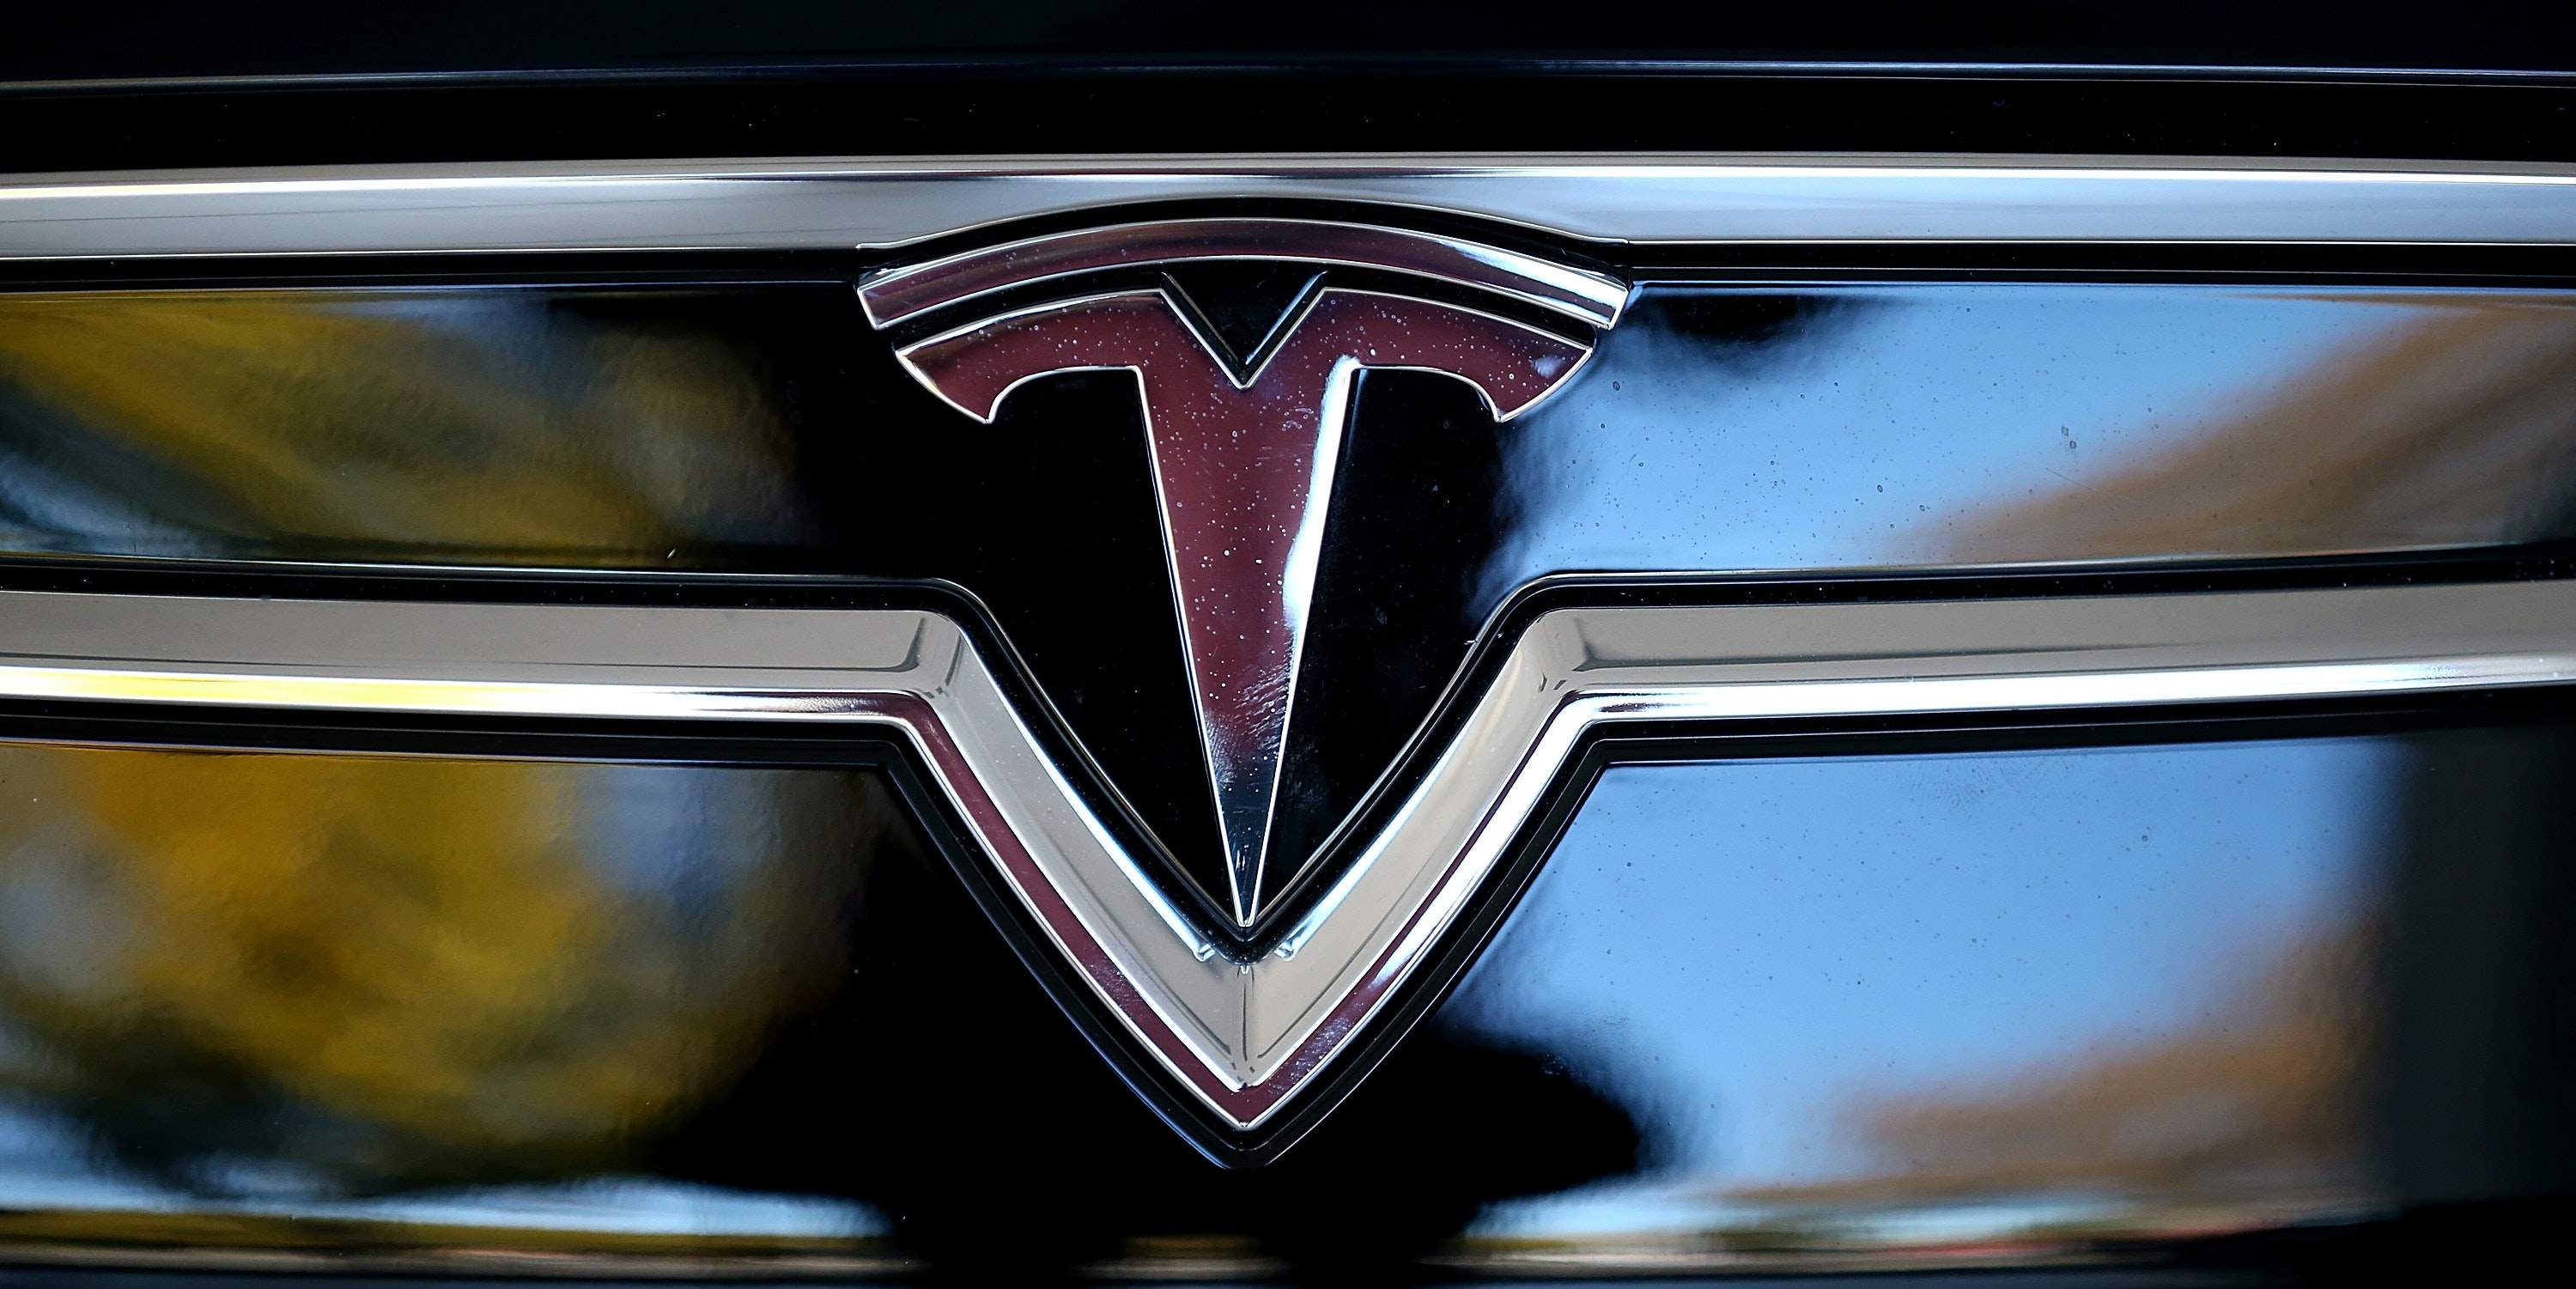 PALO ALTO, CA - NOVEMBER 05:  The Tesla logo is shown on the front of a new Tesla Model S car at a Tesla showroom on November 5, 2013 in Palo Alto, California. Tesla will report third quarter earnings today after the closing bell.  (Photo by Justin Sullivan/Getty Images)